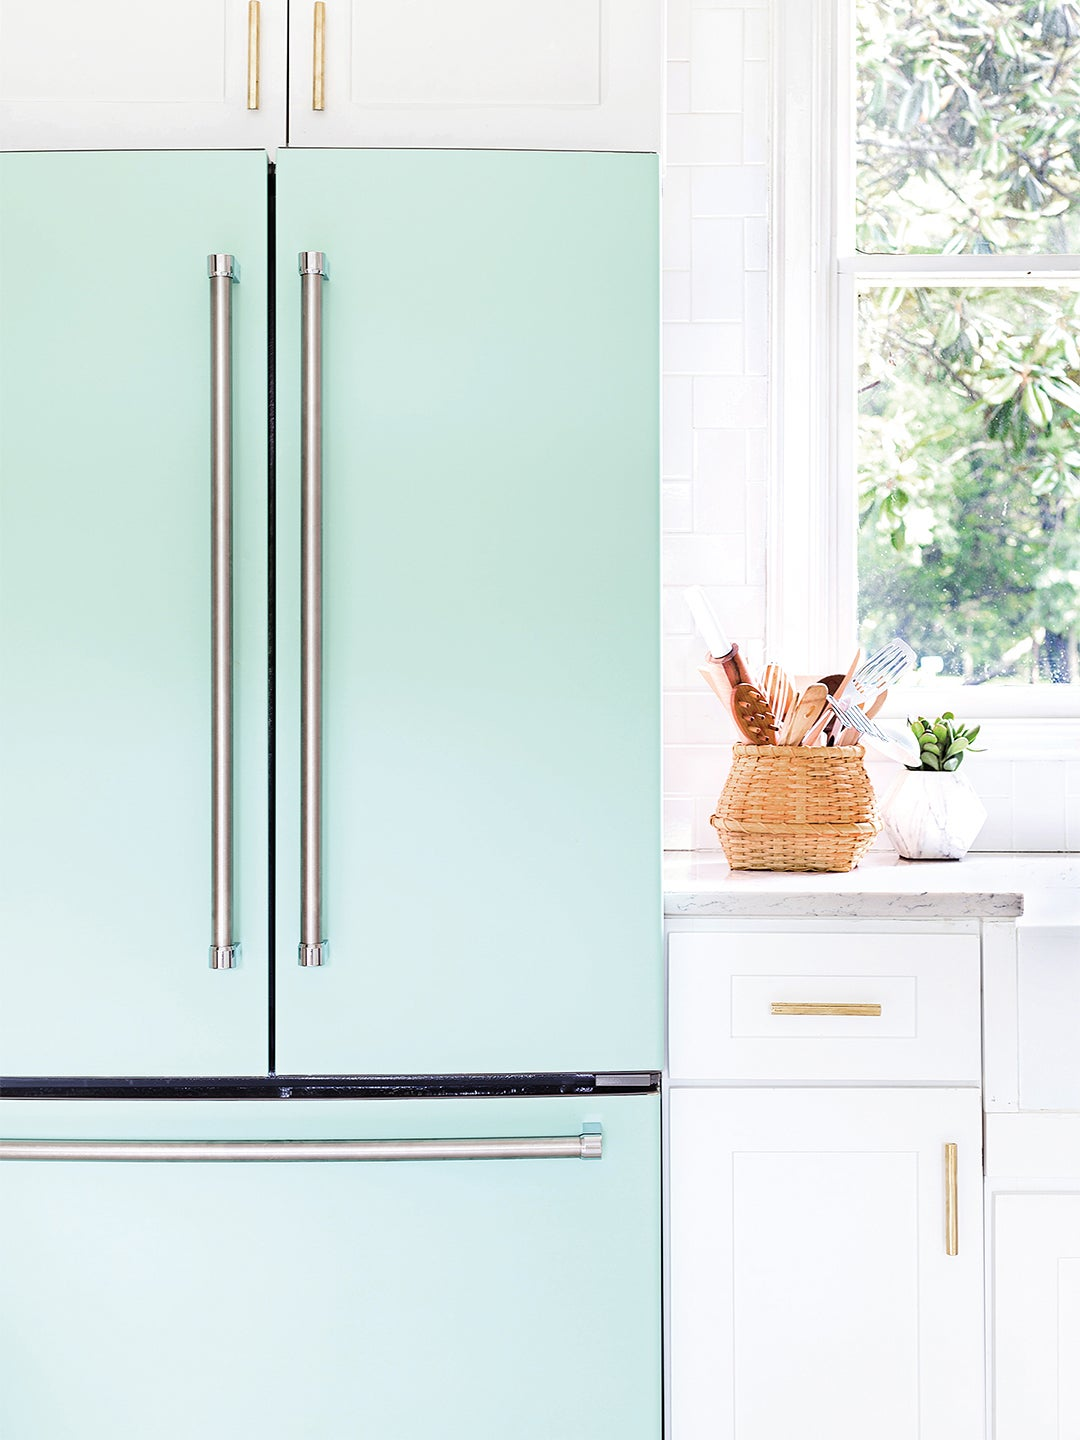 00-FEATURE-how-to-organize-french-door-refrigerator-domino